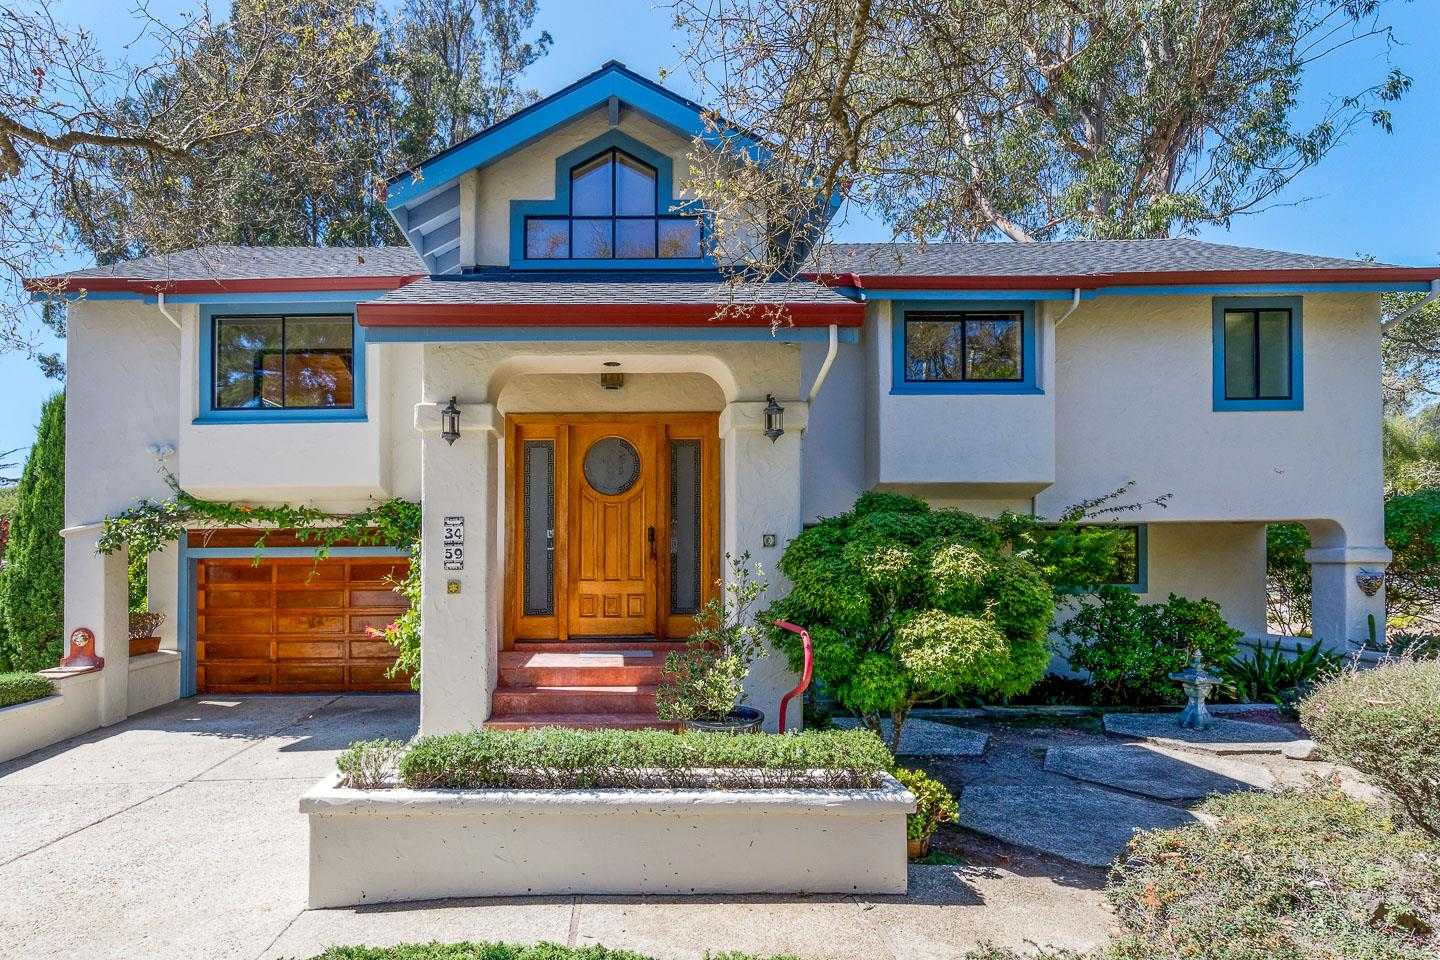 $1,295,000 - 4Br/3Ba -  for Sale in Soquel